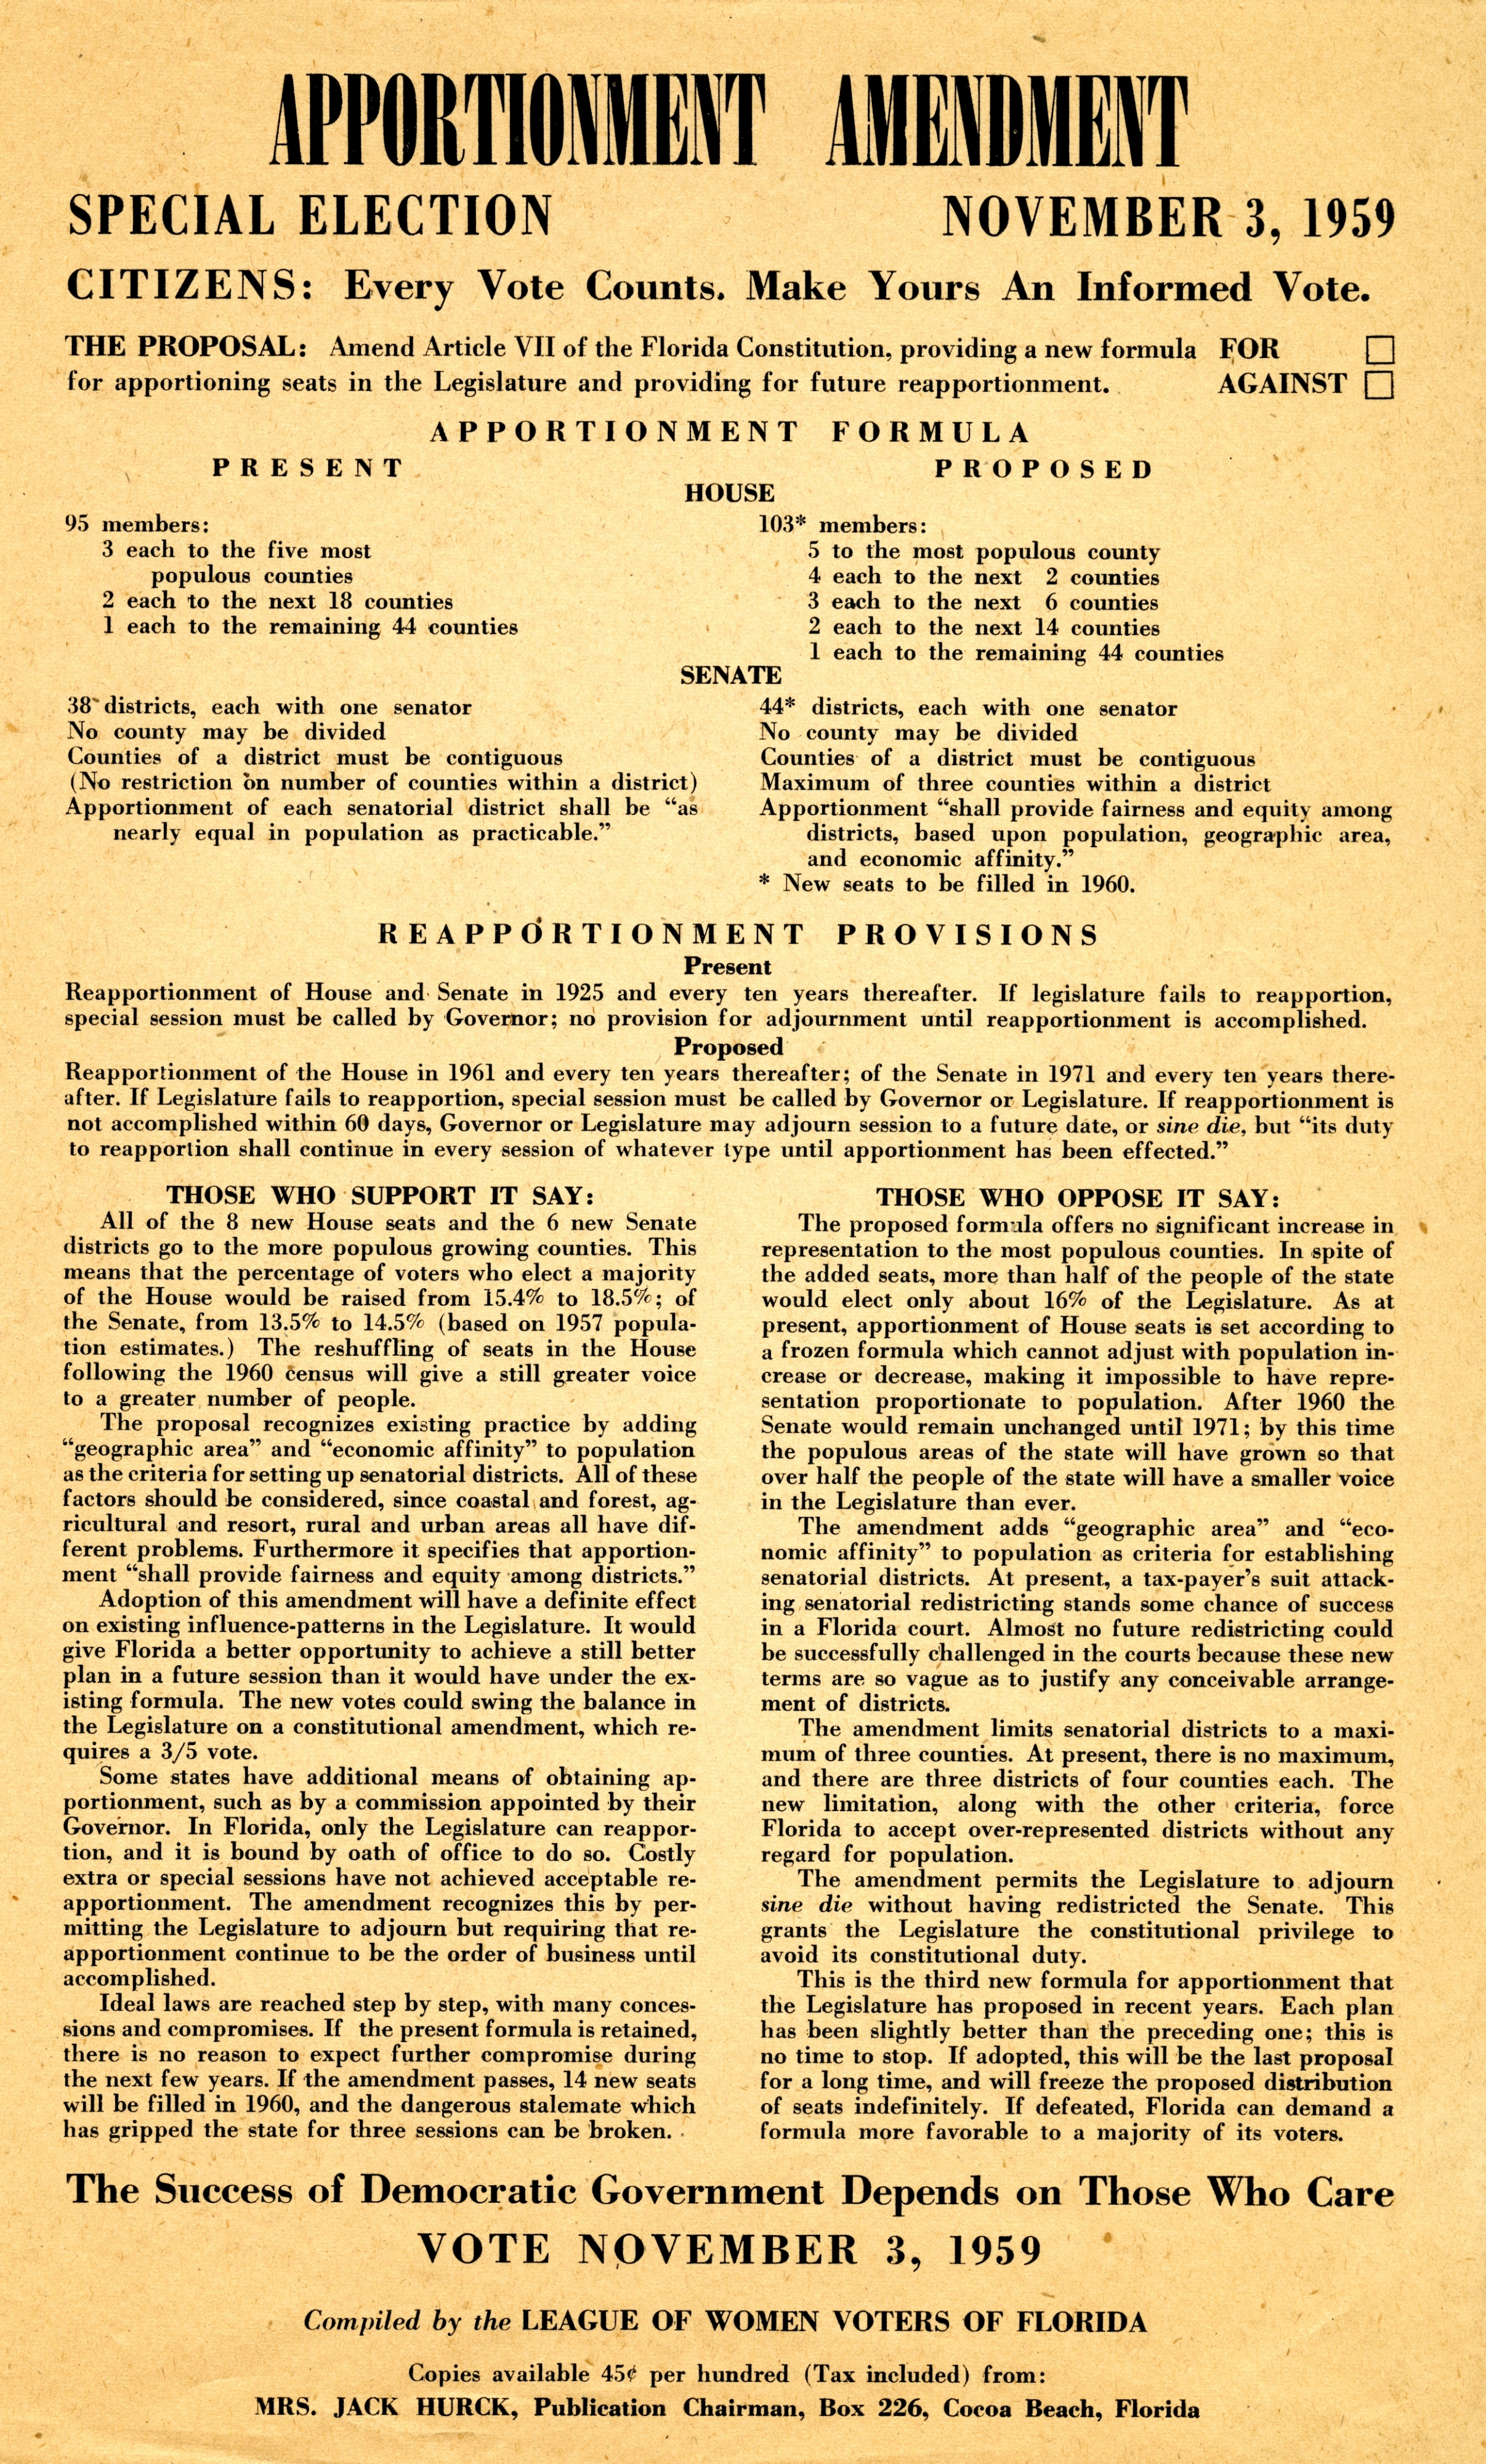 Apportionment amendment, special election November 3, 1959.